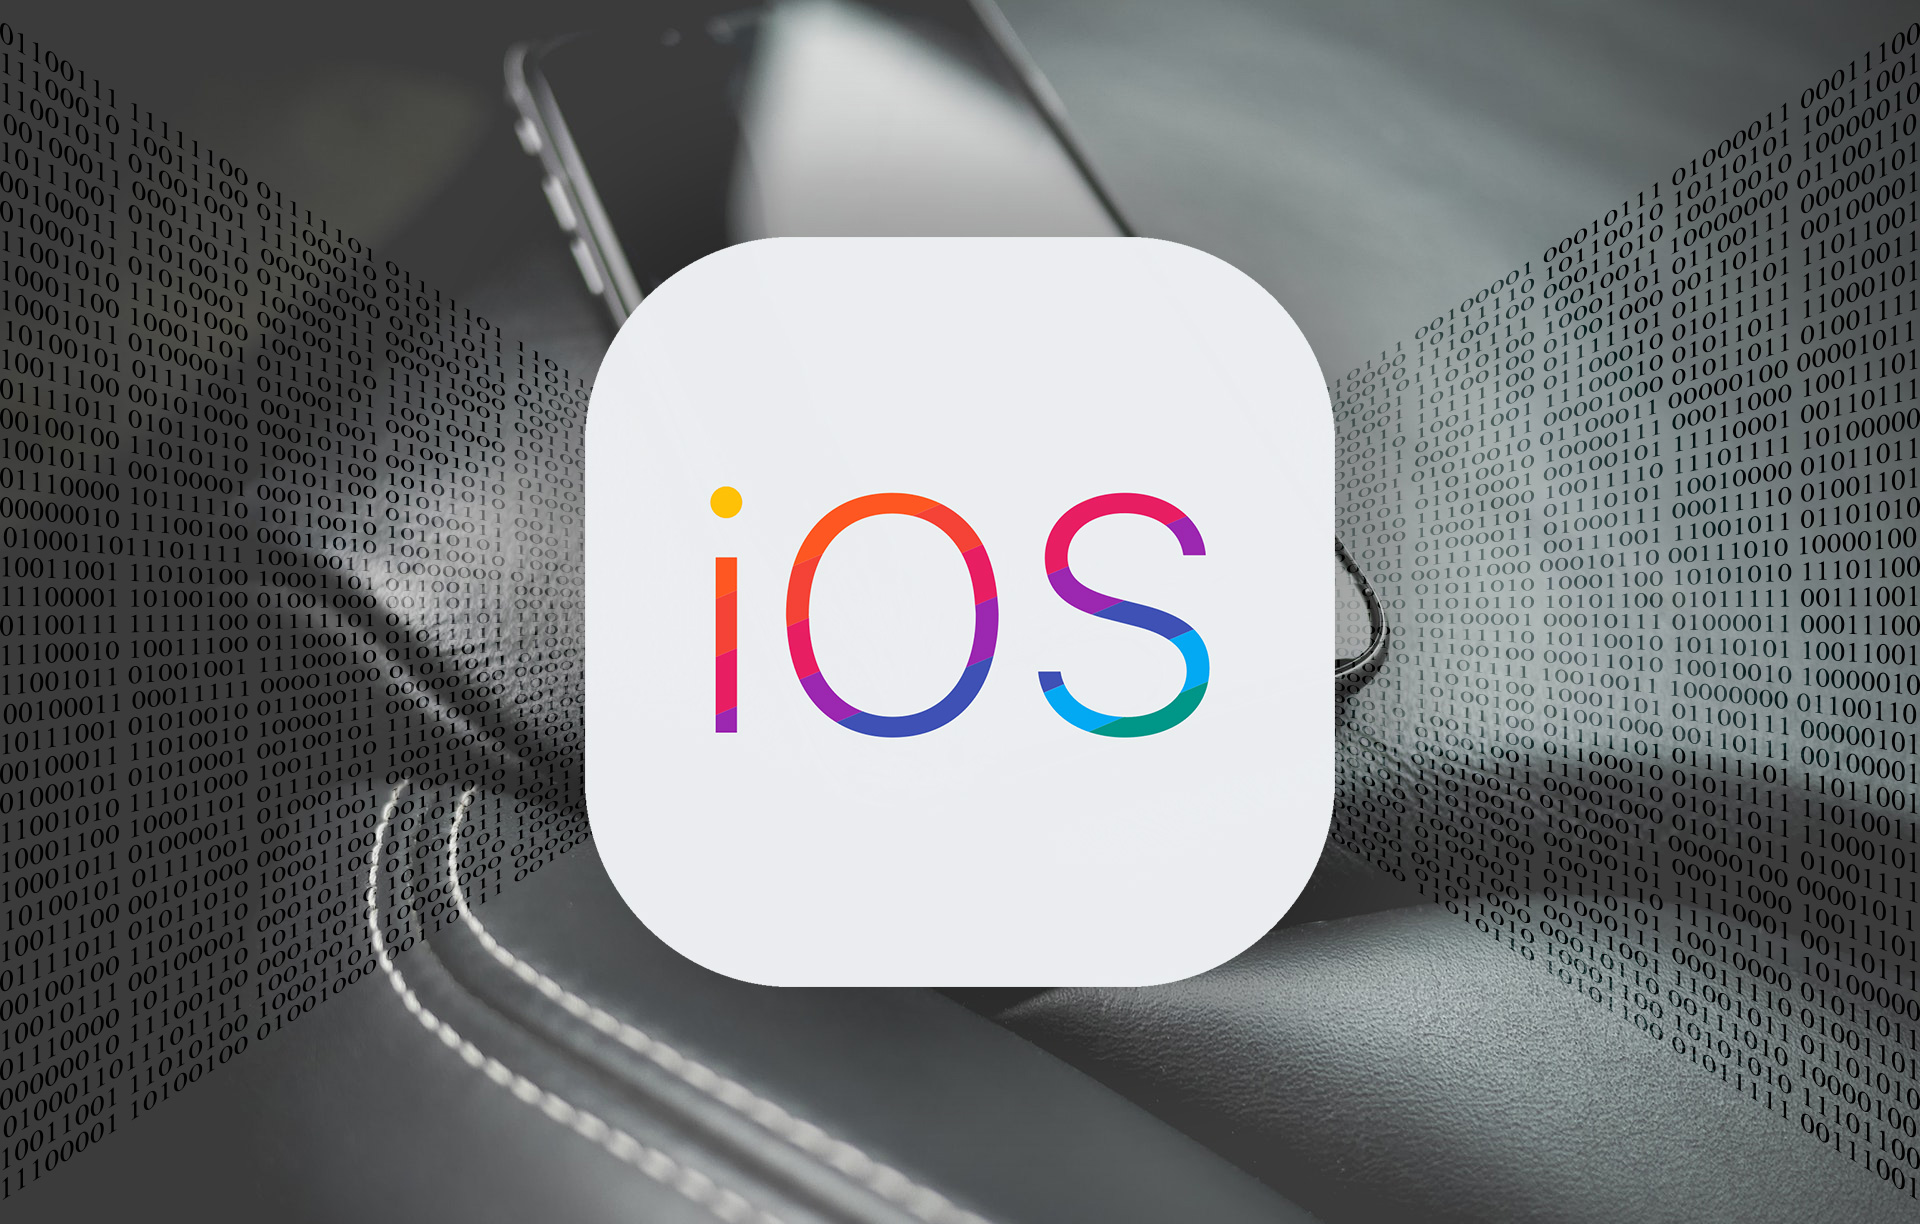 Apple fixes actively exploited vulnerabilities affecting older iDevices - Help Net Security